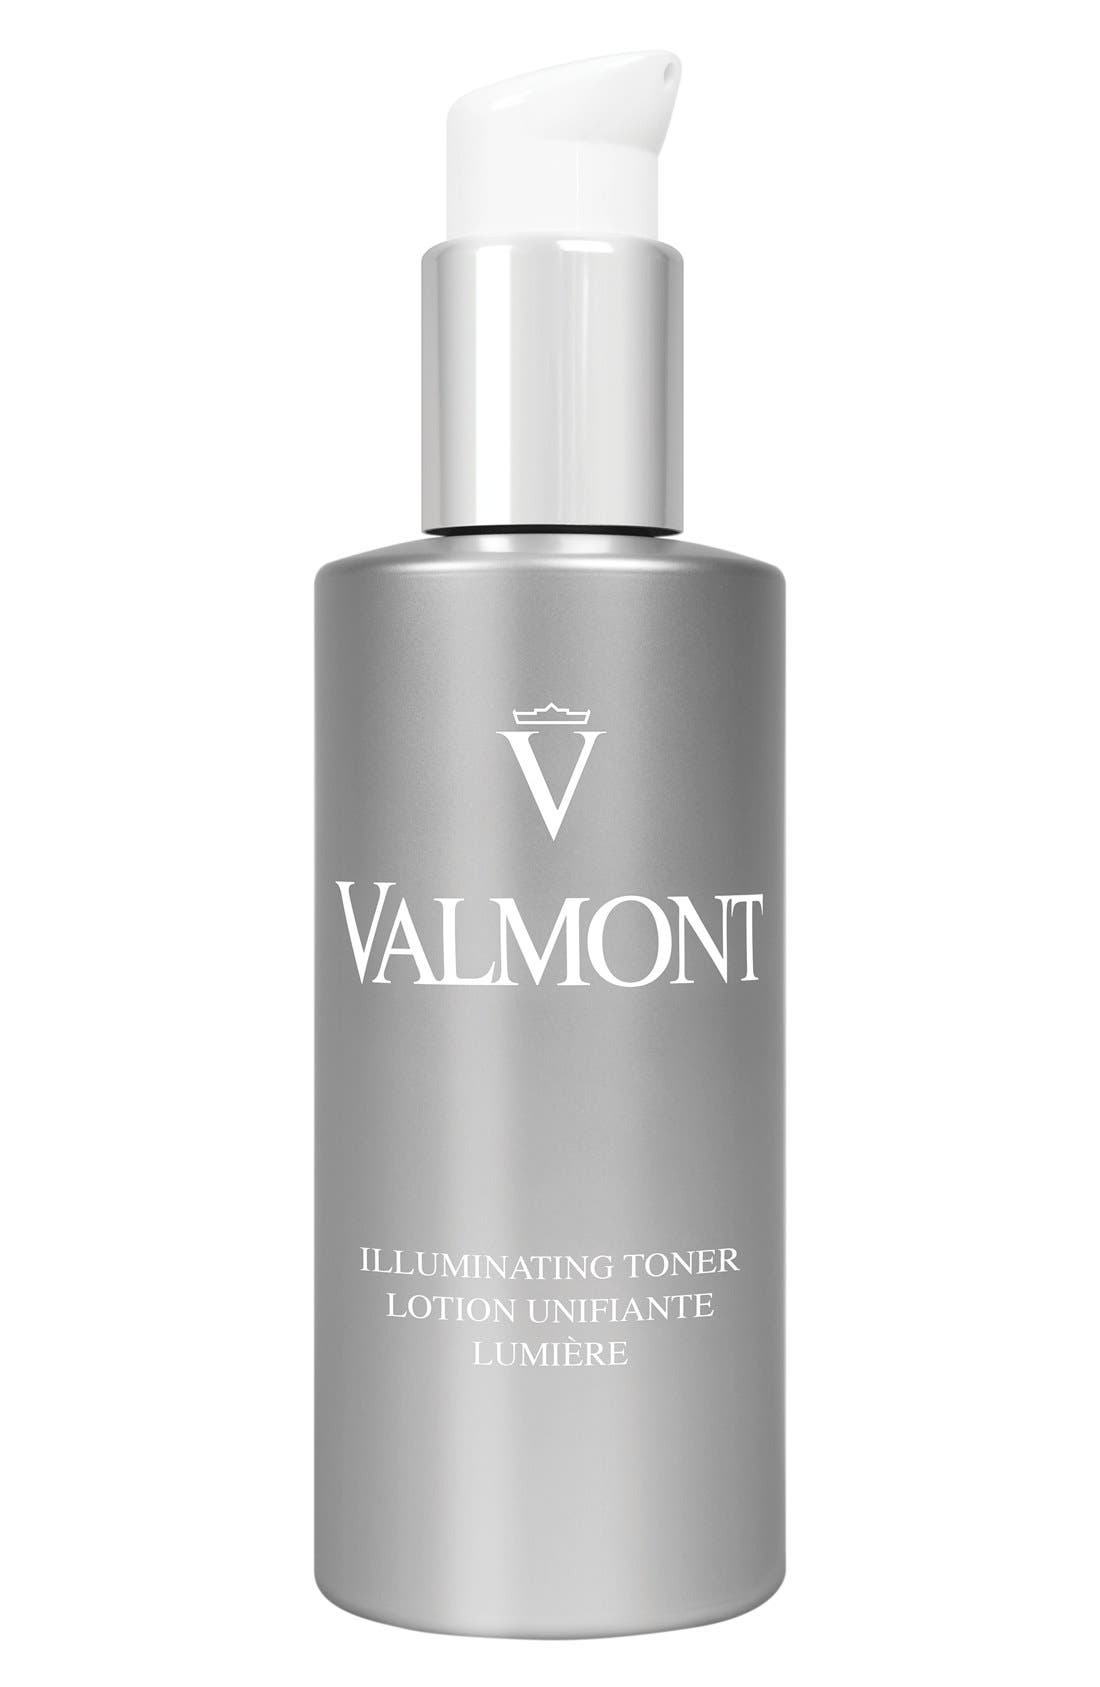 Valmont Illuminating Toner Lotion